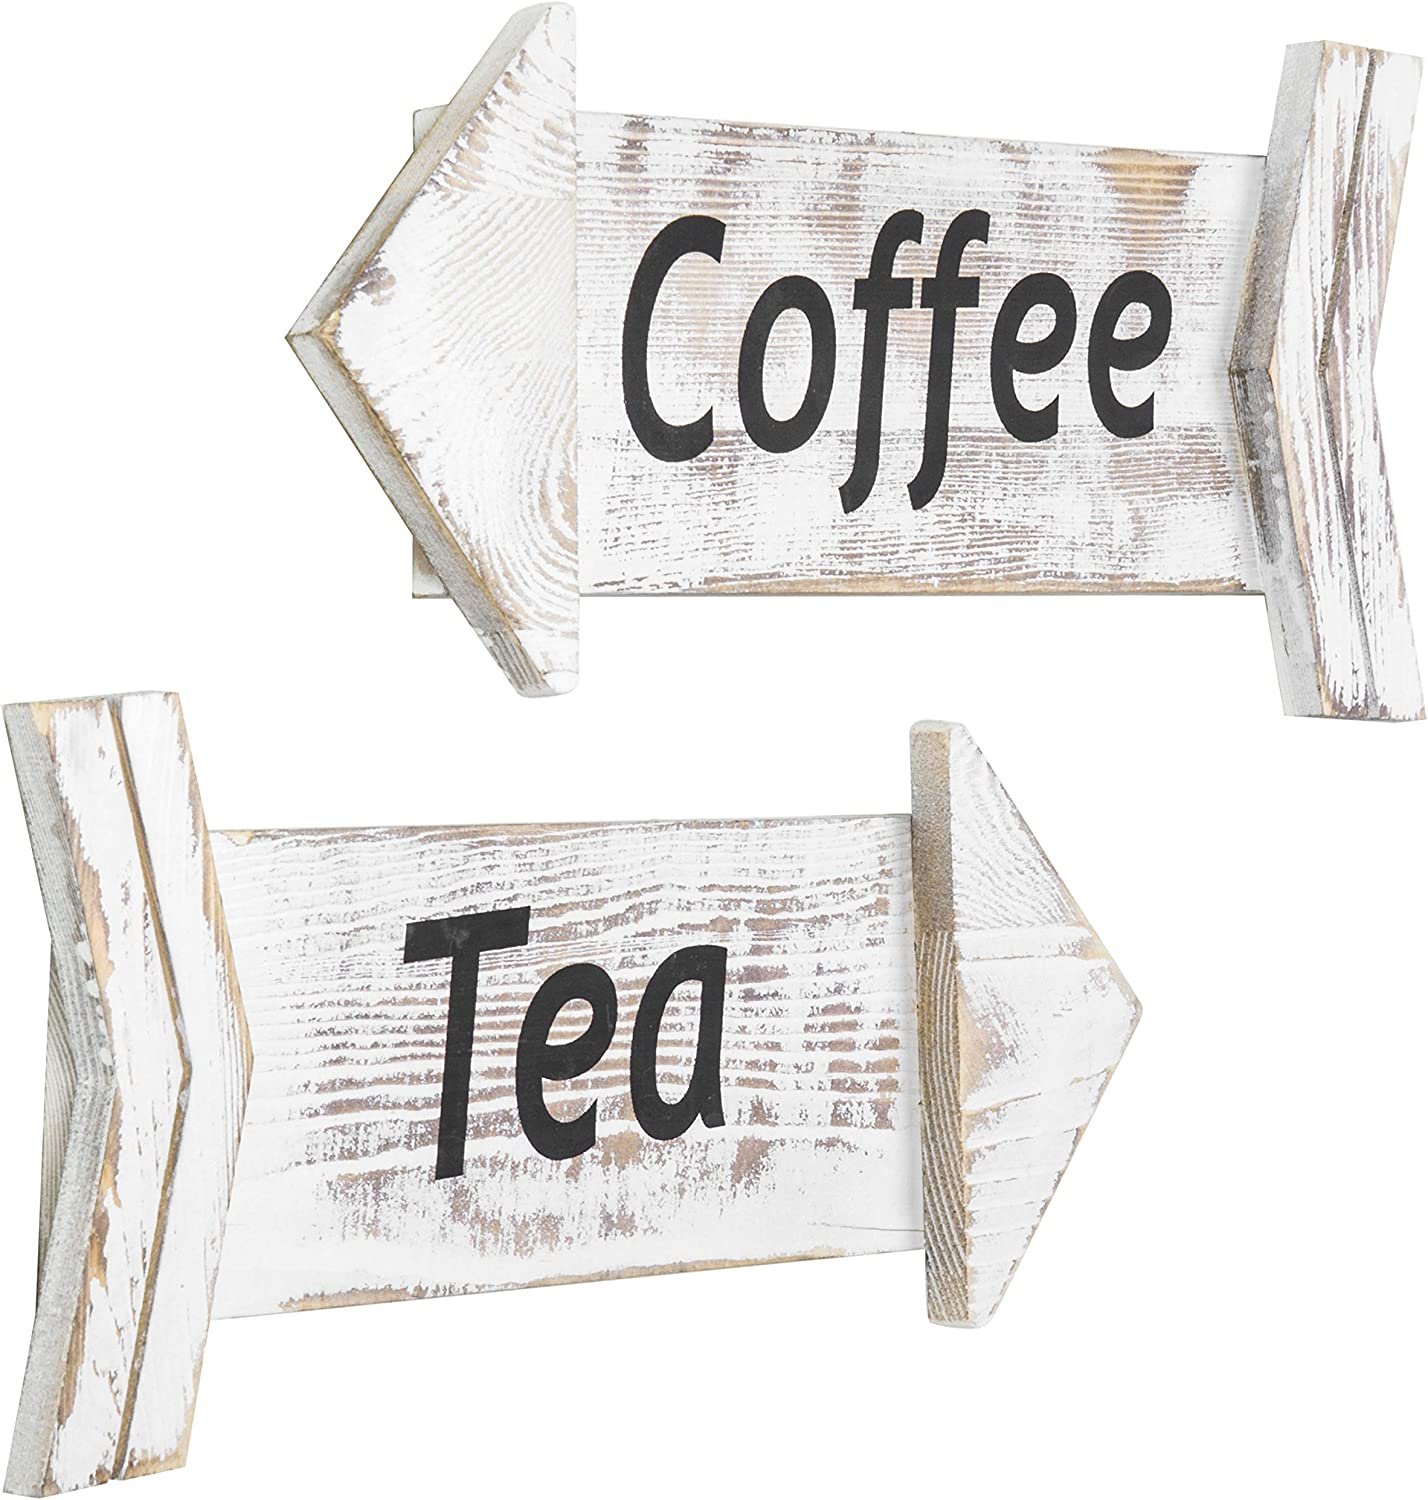 MyGift Whitewashed Wood Tea & Coffee Wall Mounted Decorative Arrow Signs